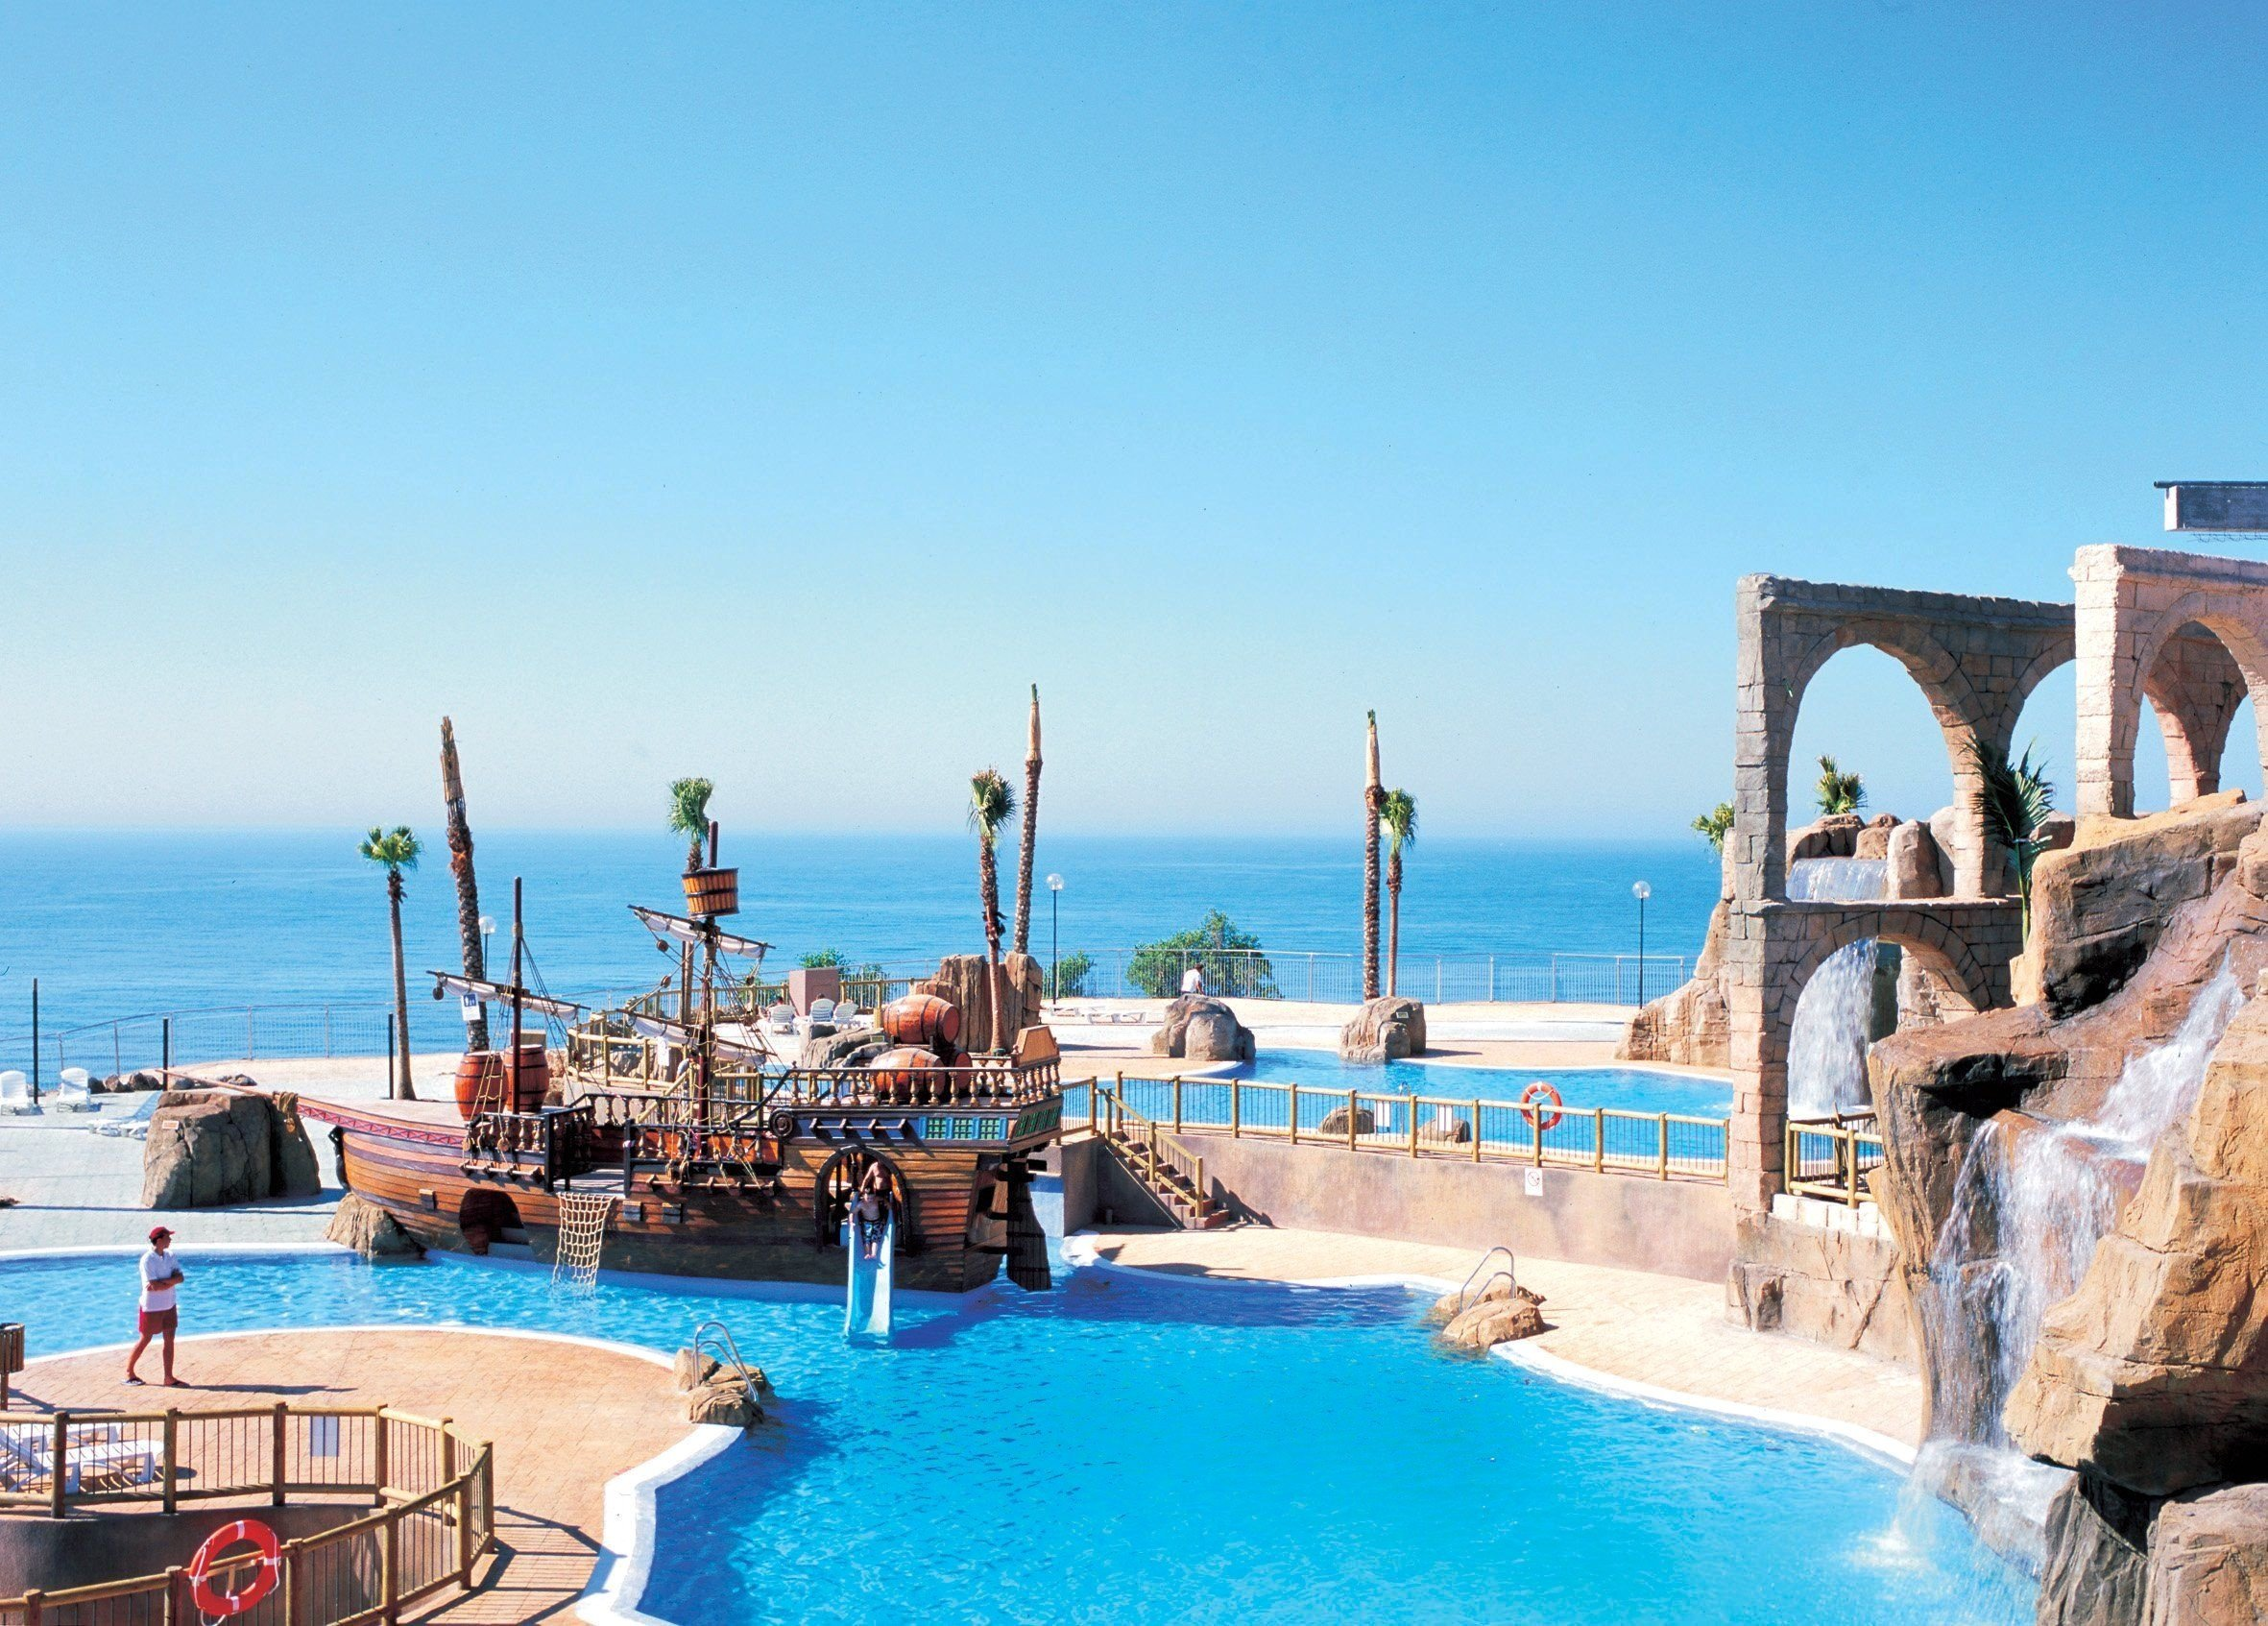 Make a sizeable saving when booking holidays with First Choice this month